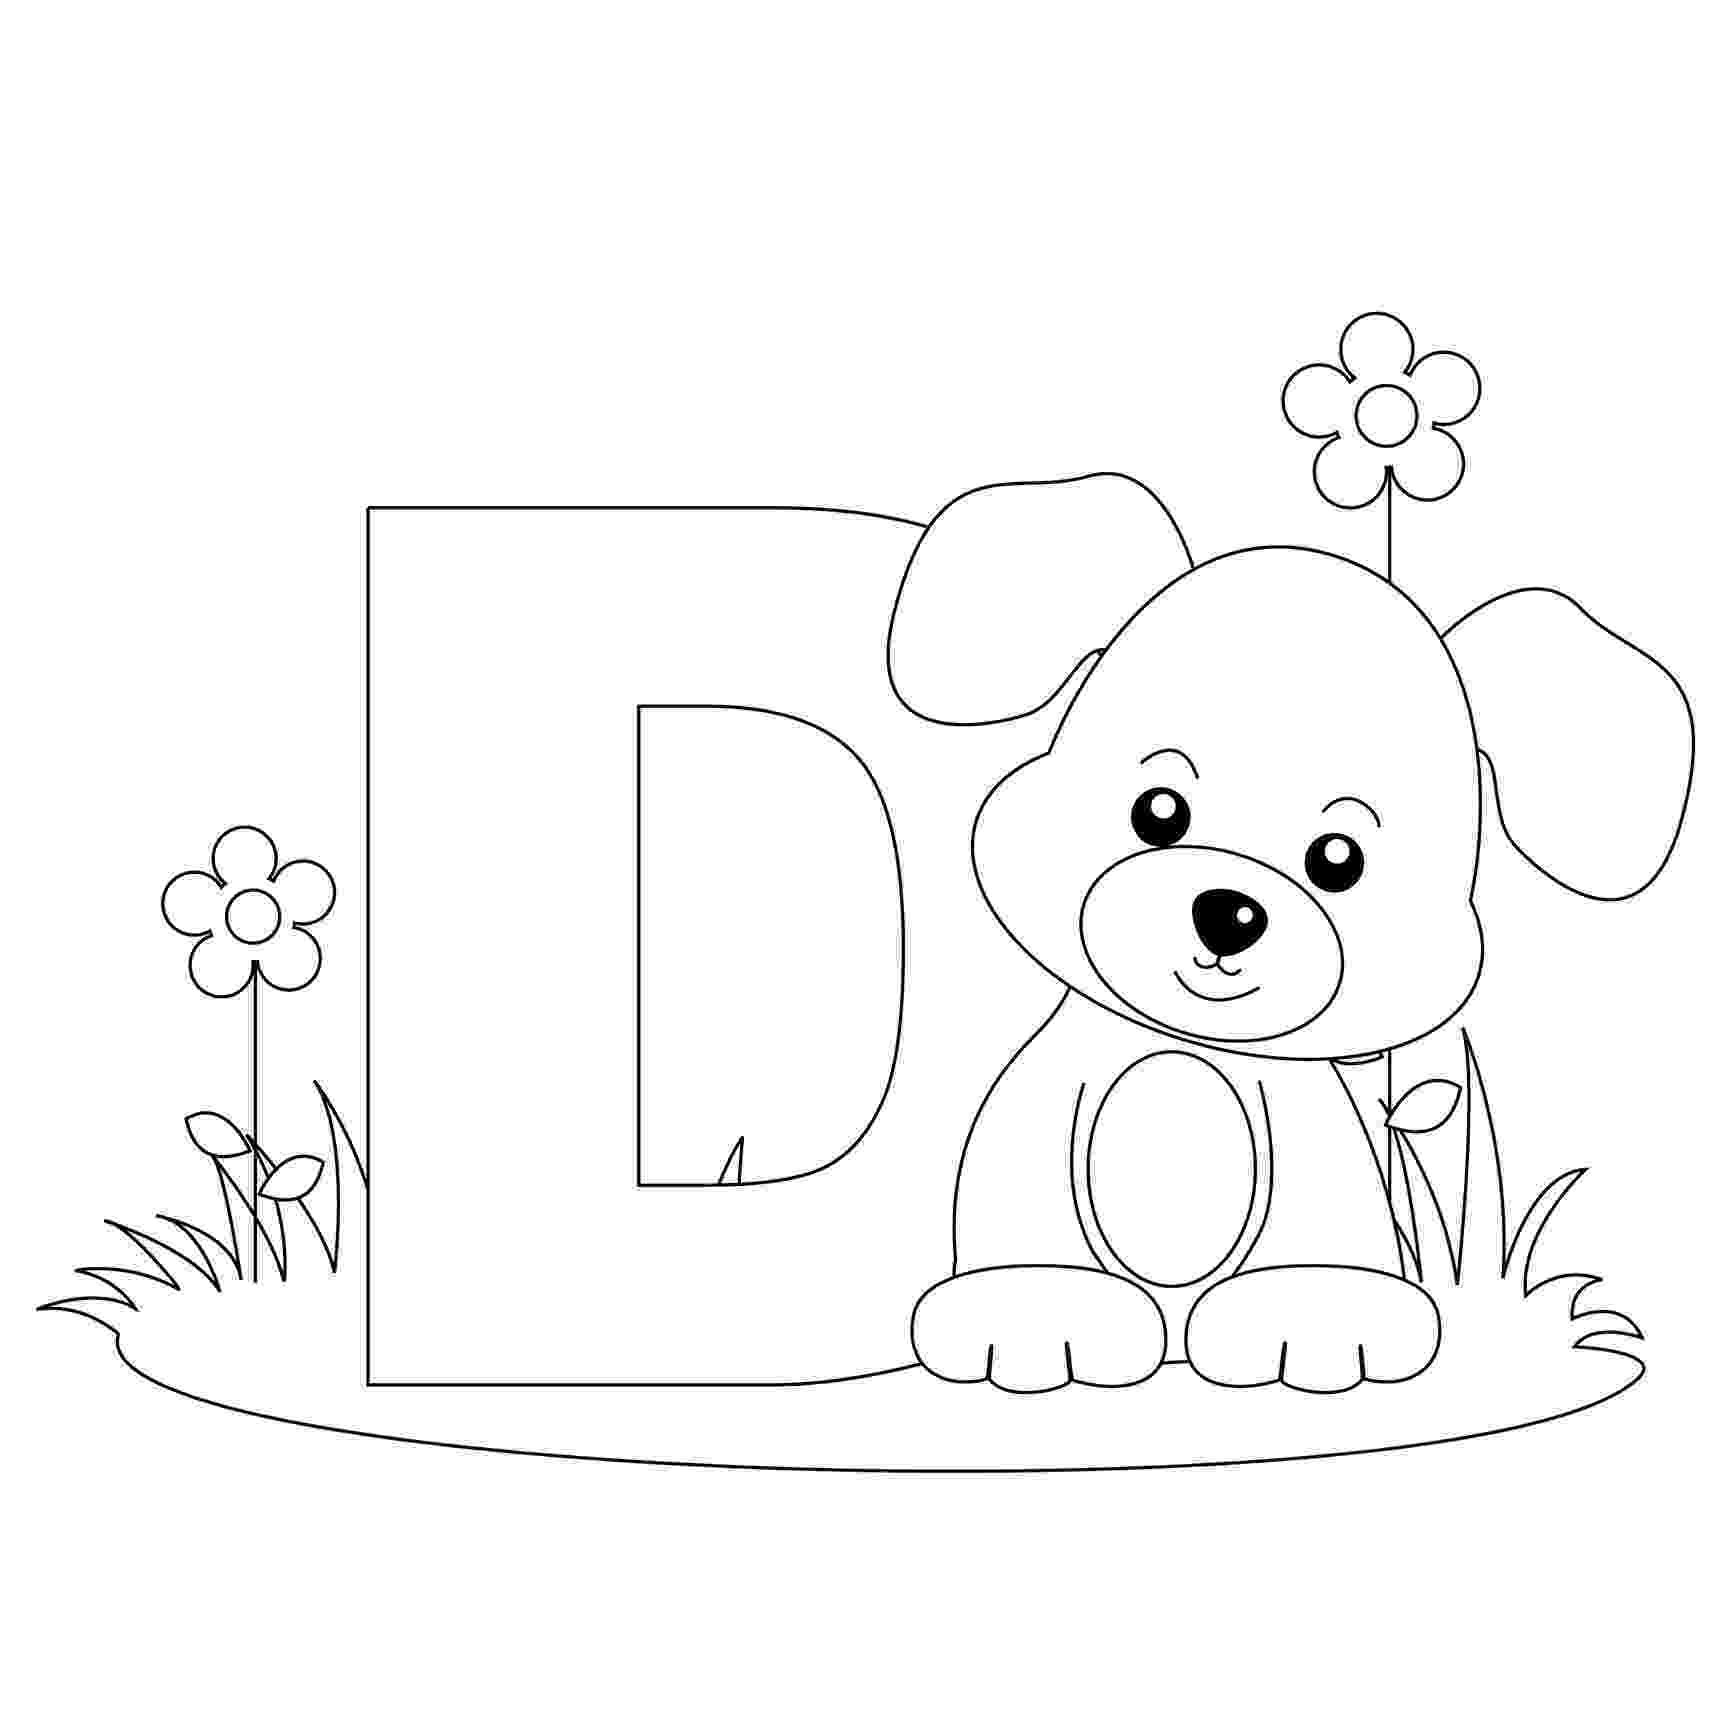 letter d coloring page letter d coloring page by early childhood resource center d page coloring letter